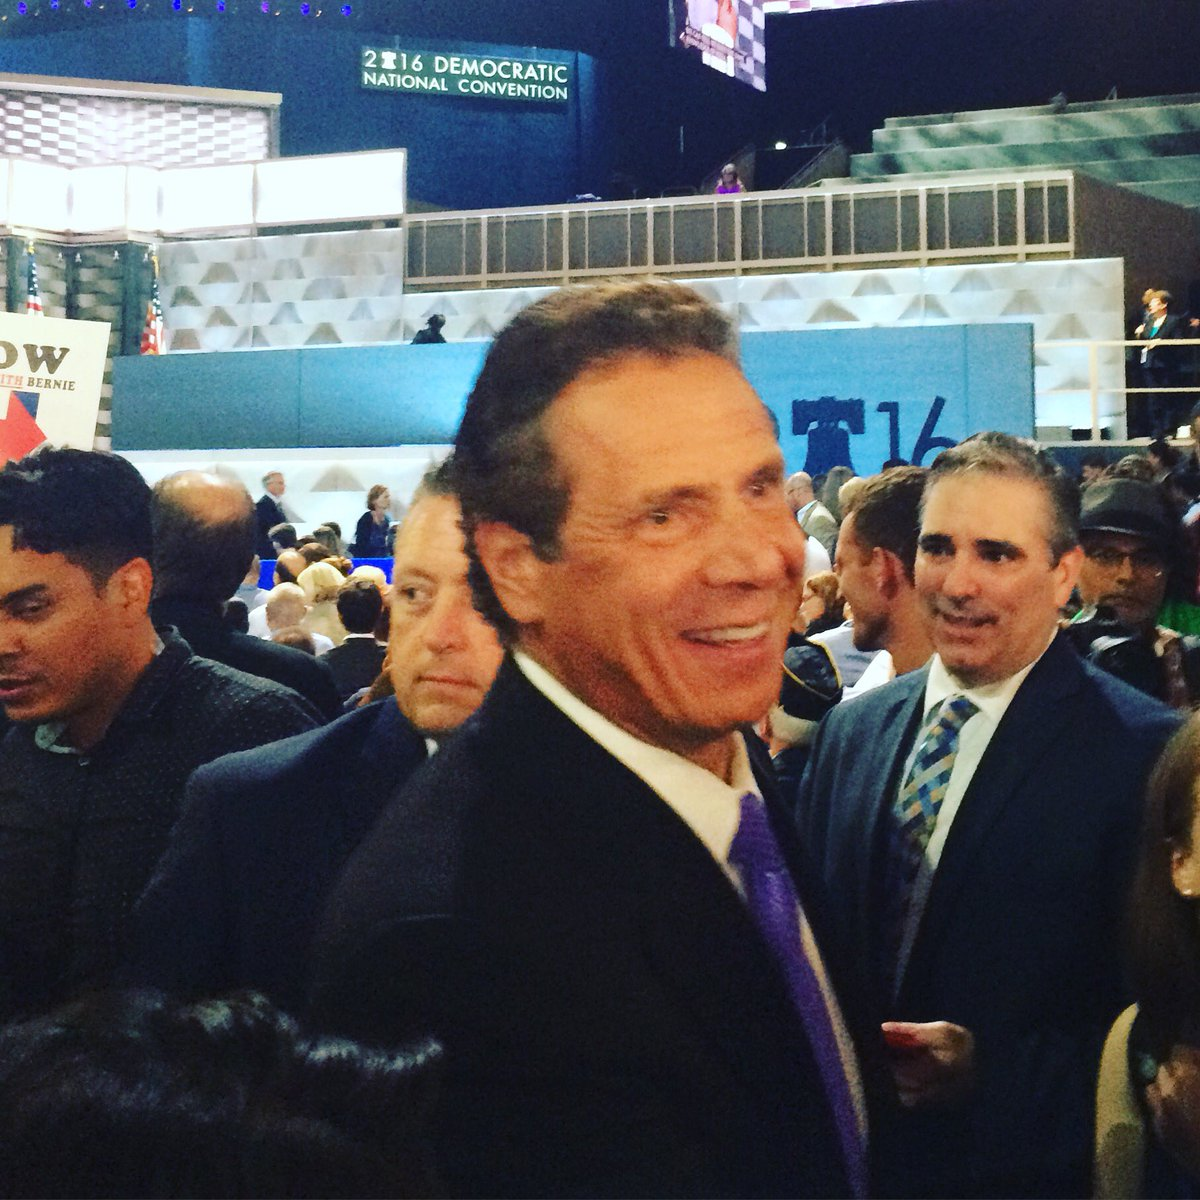 NY Governor Andrew is having a great time greeting fellow Democrats on the floor @DemConvention! #DemsInPhilly https://t.co/NivgWzg0RR